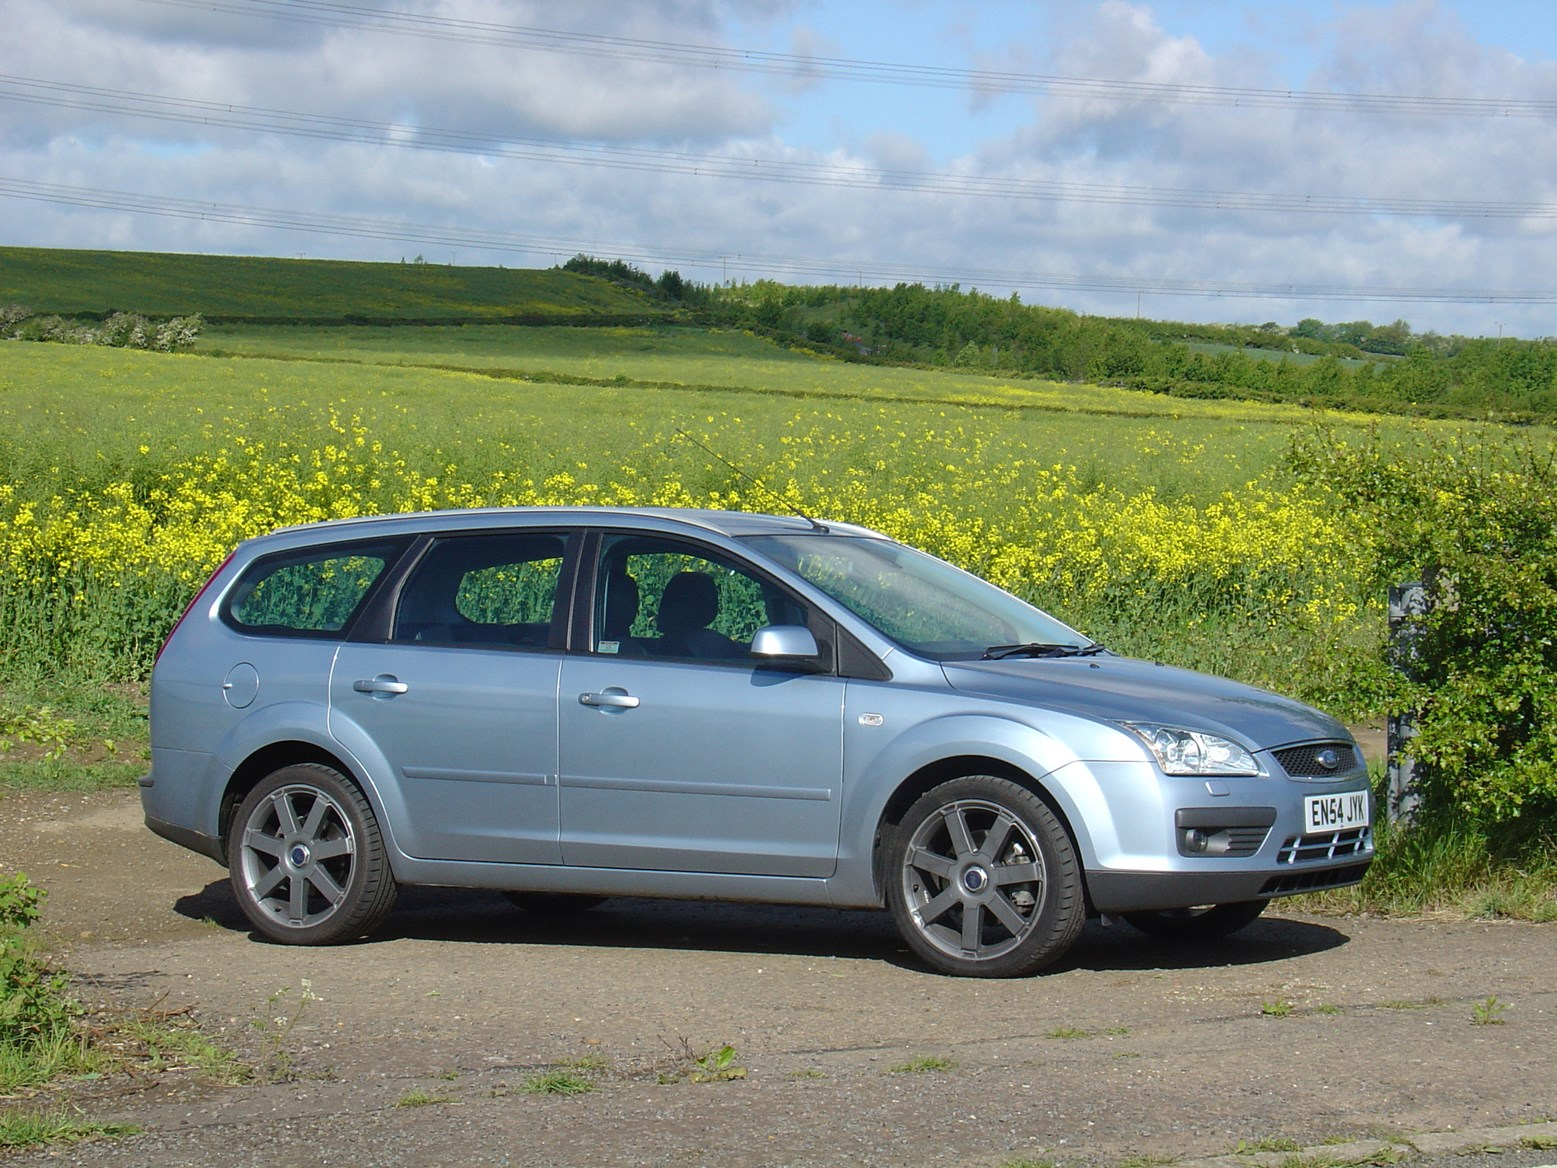 Used Ford Focus St For Sale >> Ford Focus Estate (2005 - 2011) Photos | Parkers